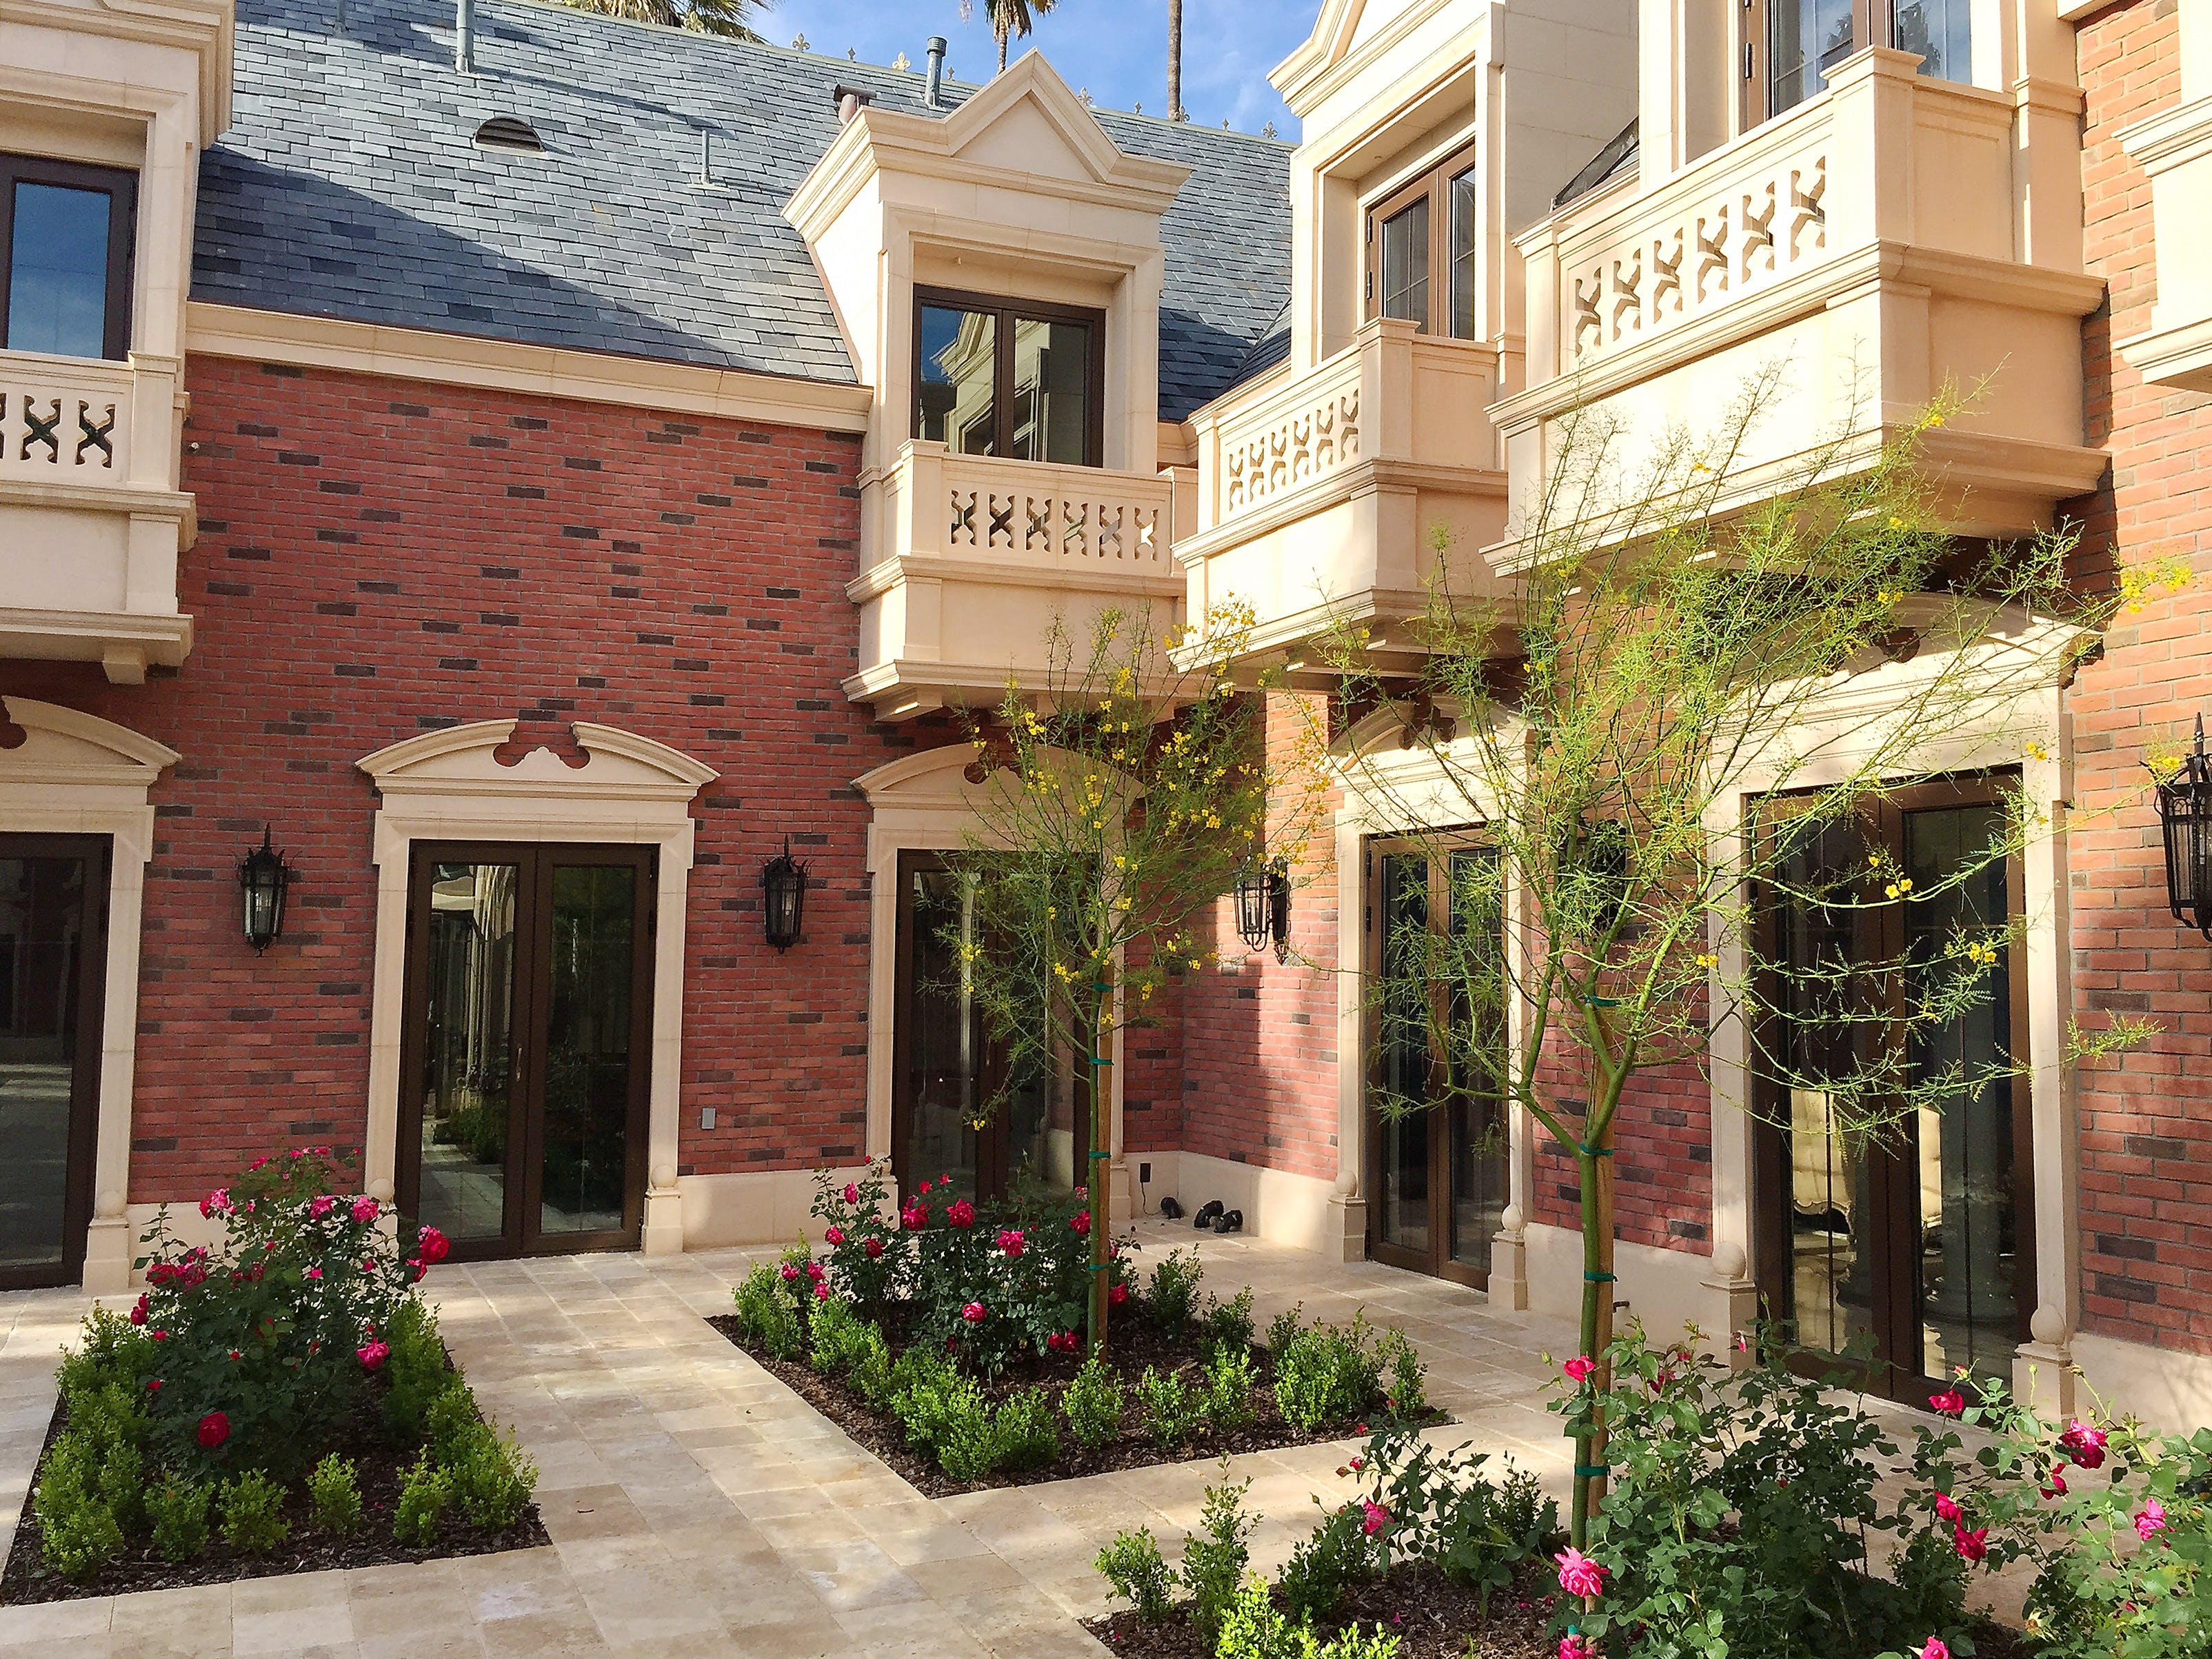 The Carriage House\